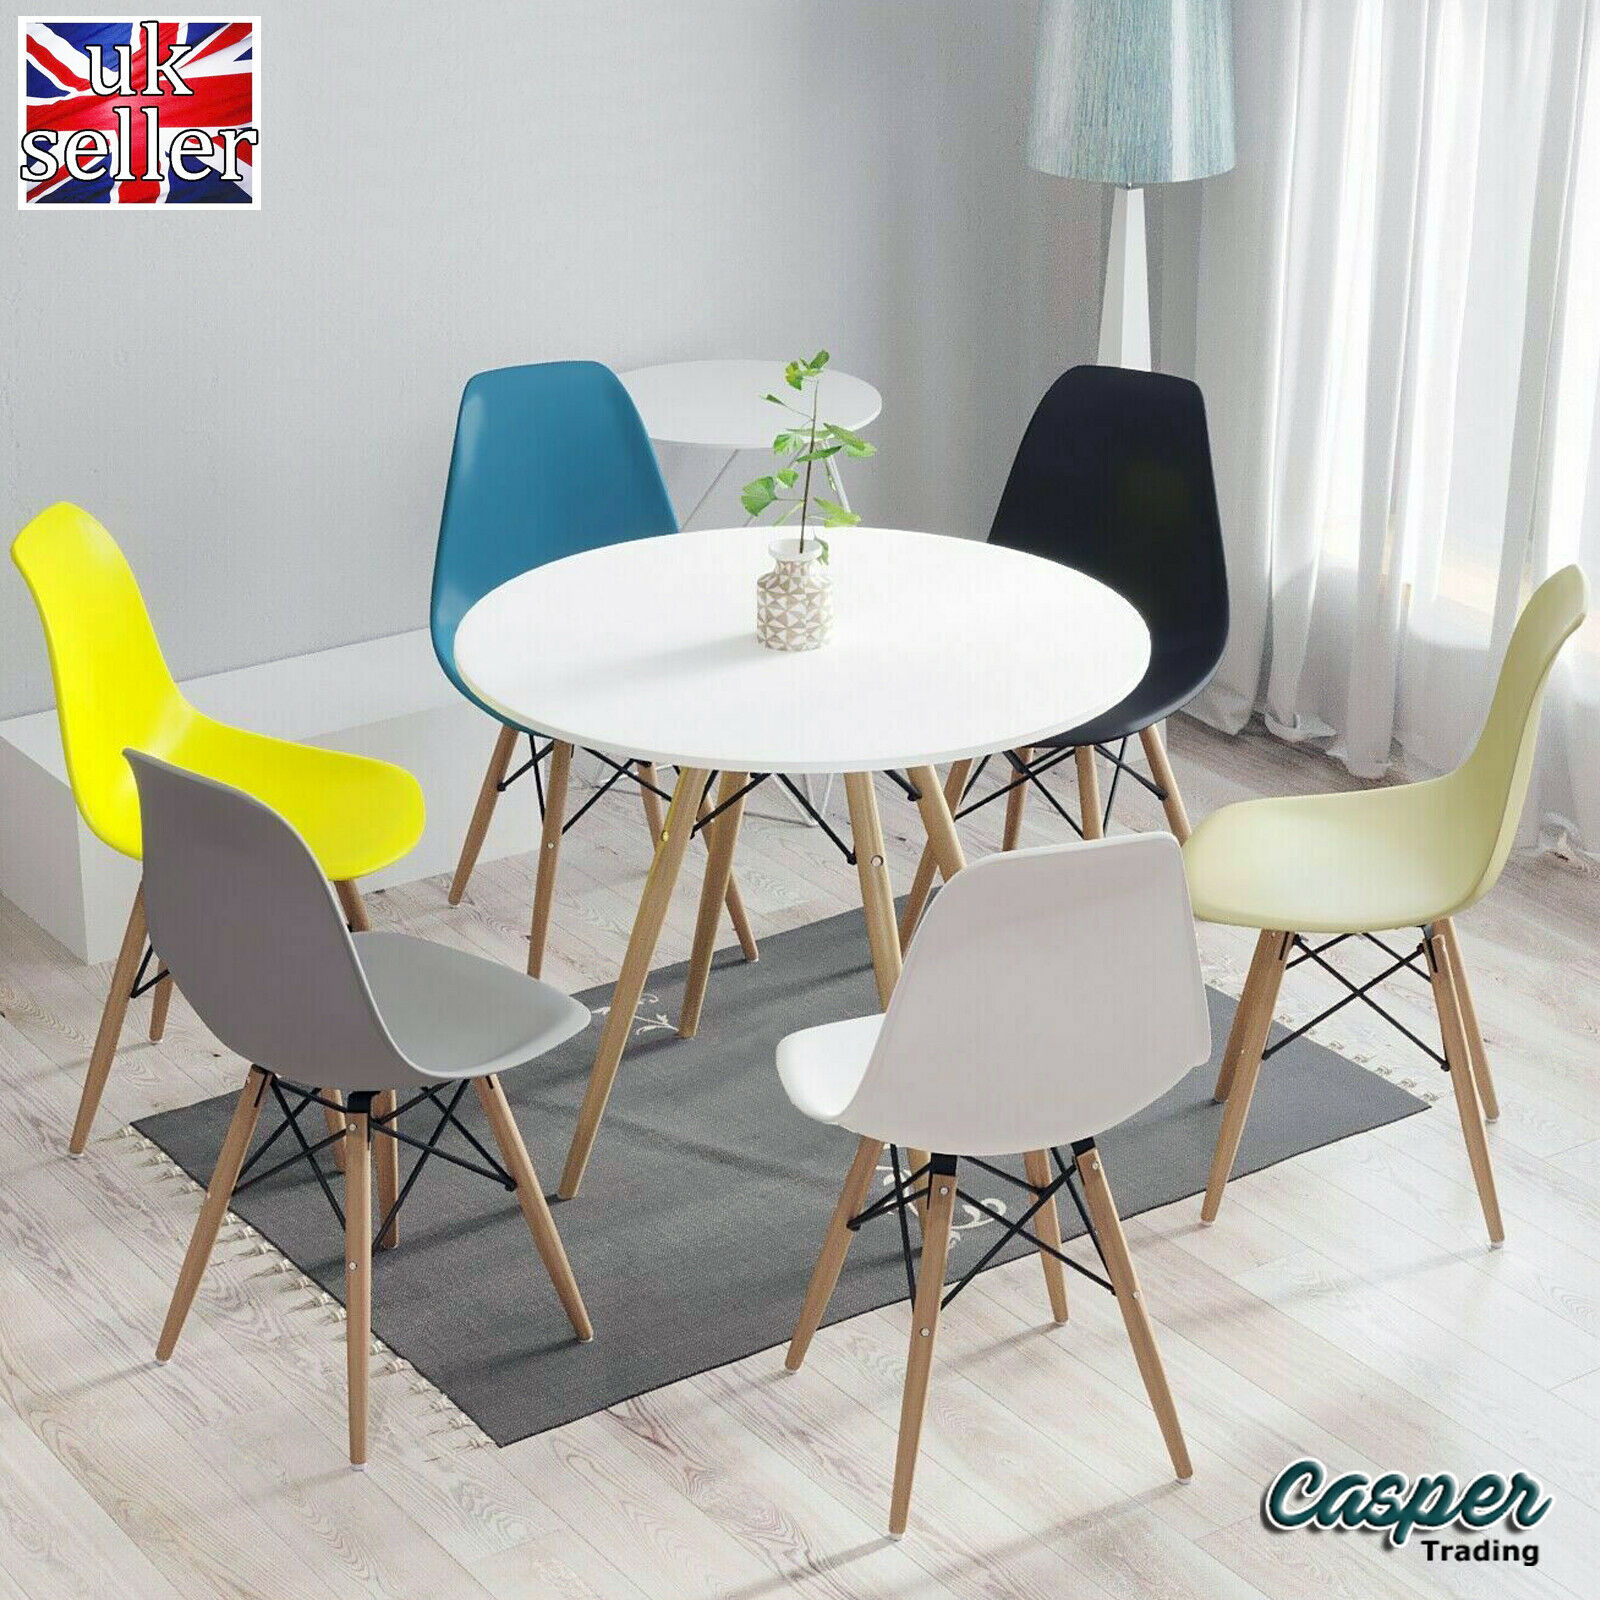 Charter Dining Table 90cm 2x Hudson Chair Set Butcher S Block Top Design Oak Cream F00177 For Sale Ebay